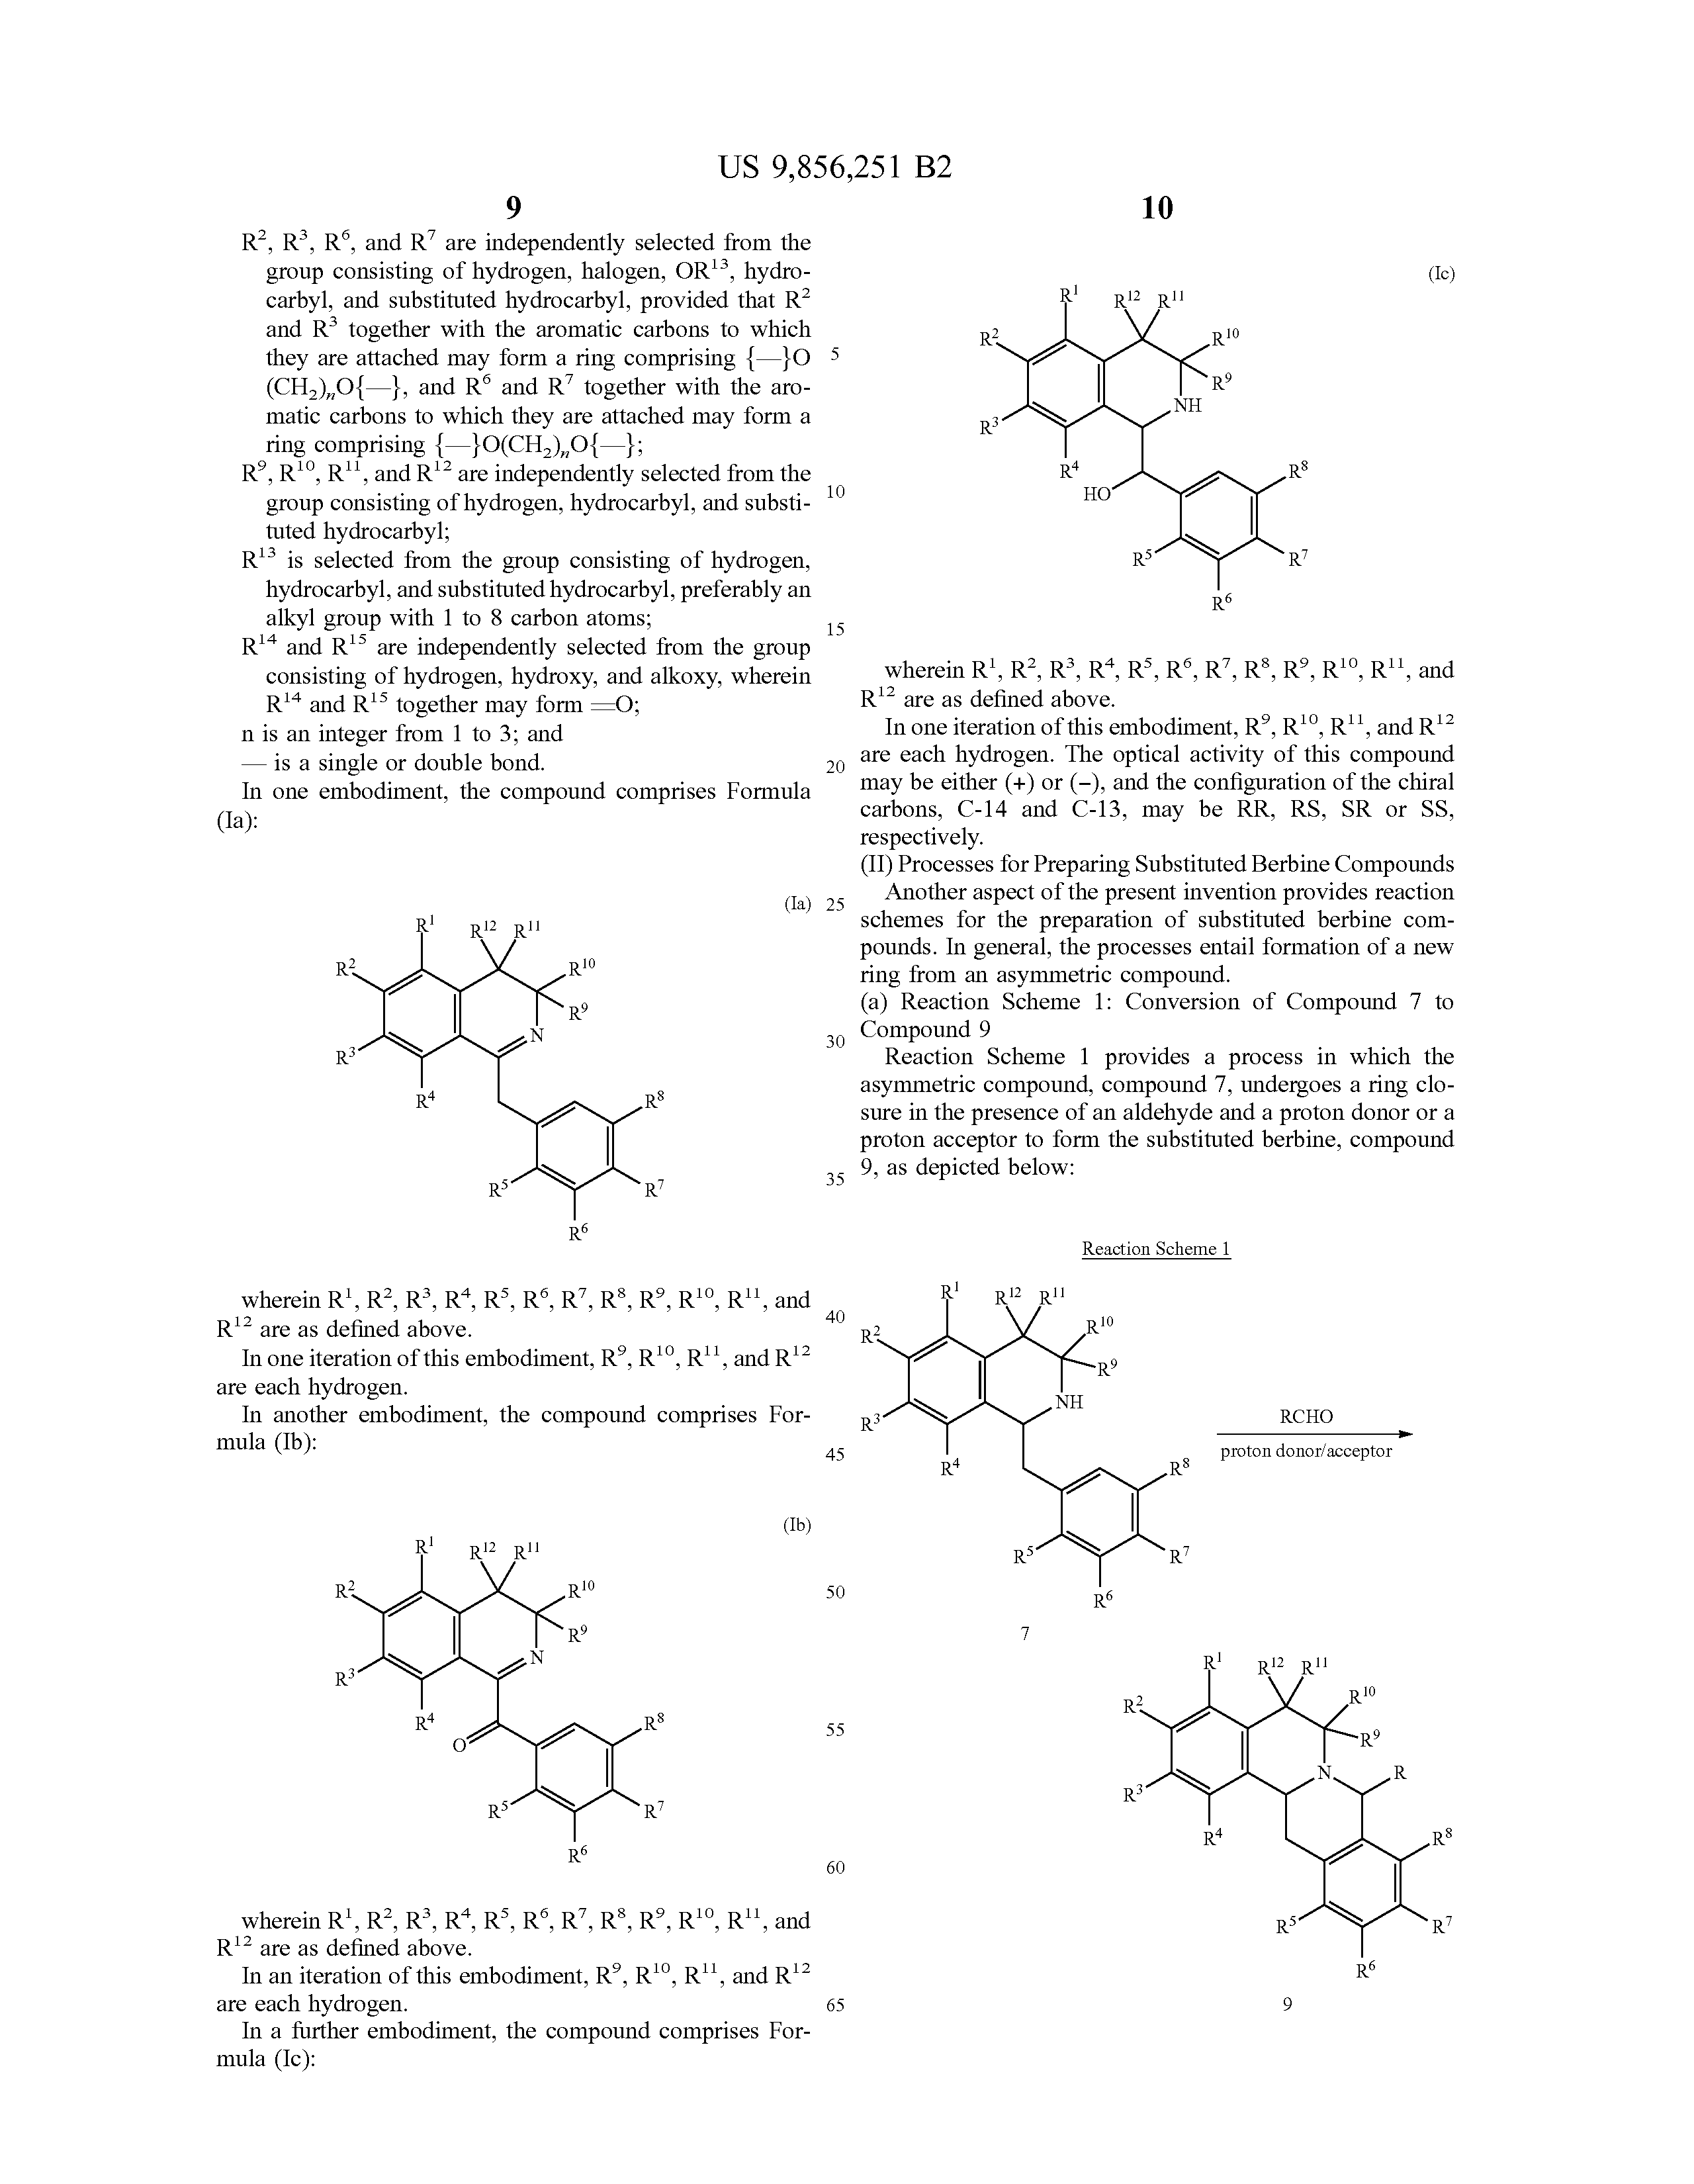 US 9856251 B2 - Substituted Berbines And Processes For Their